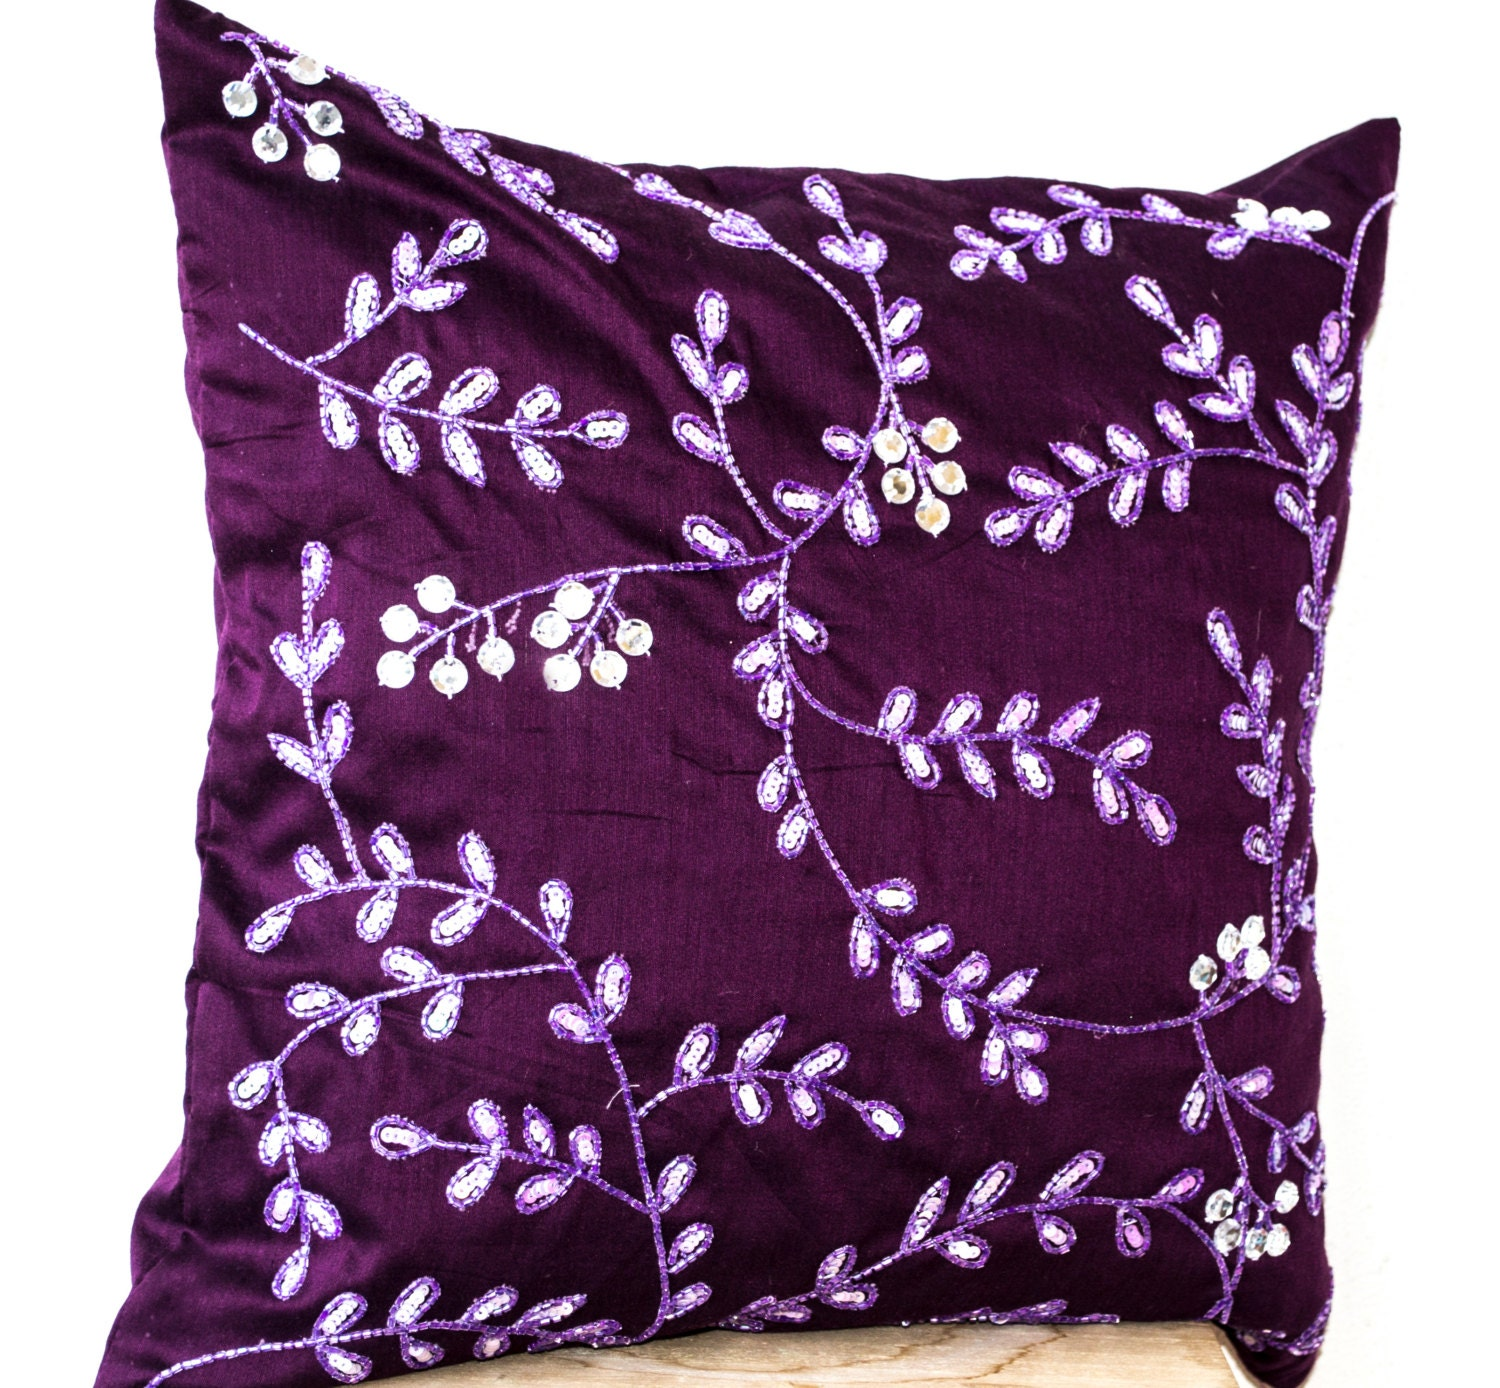 Radiant orchid throw pillows bead sequin detail Leaves